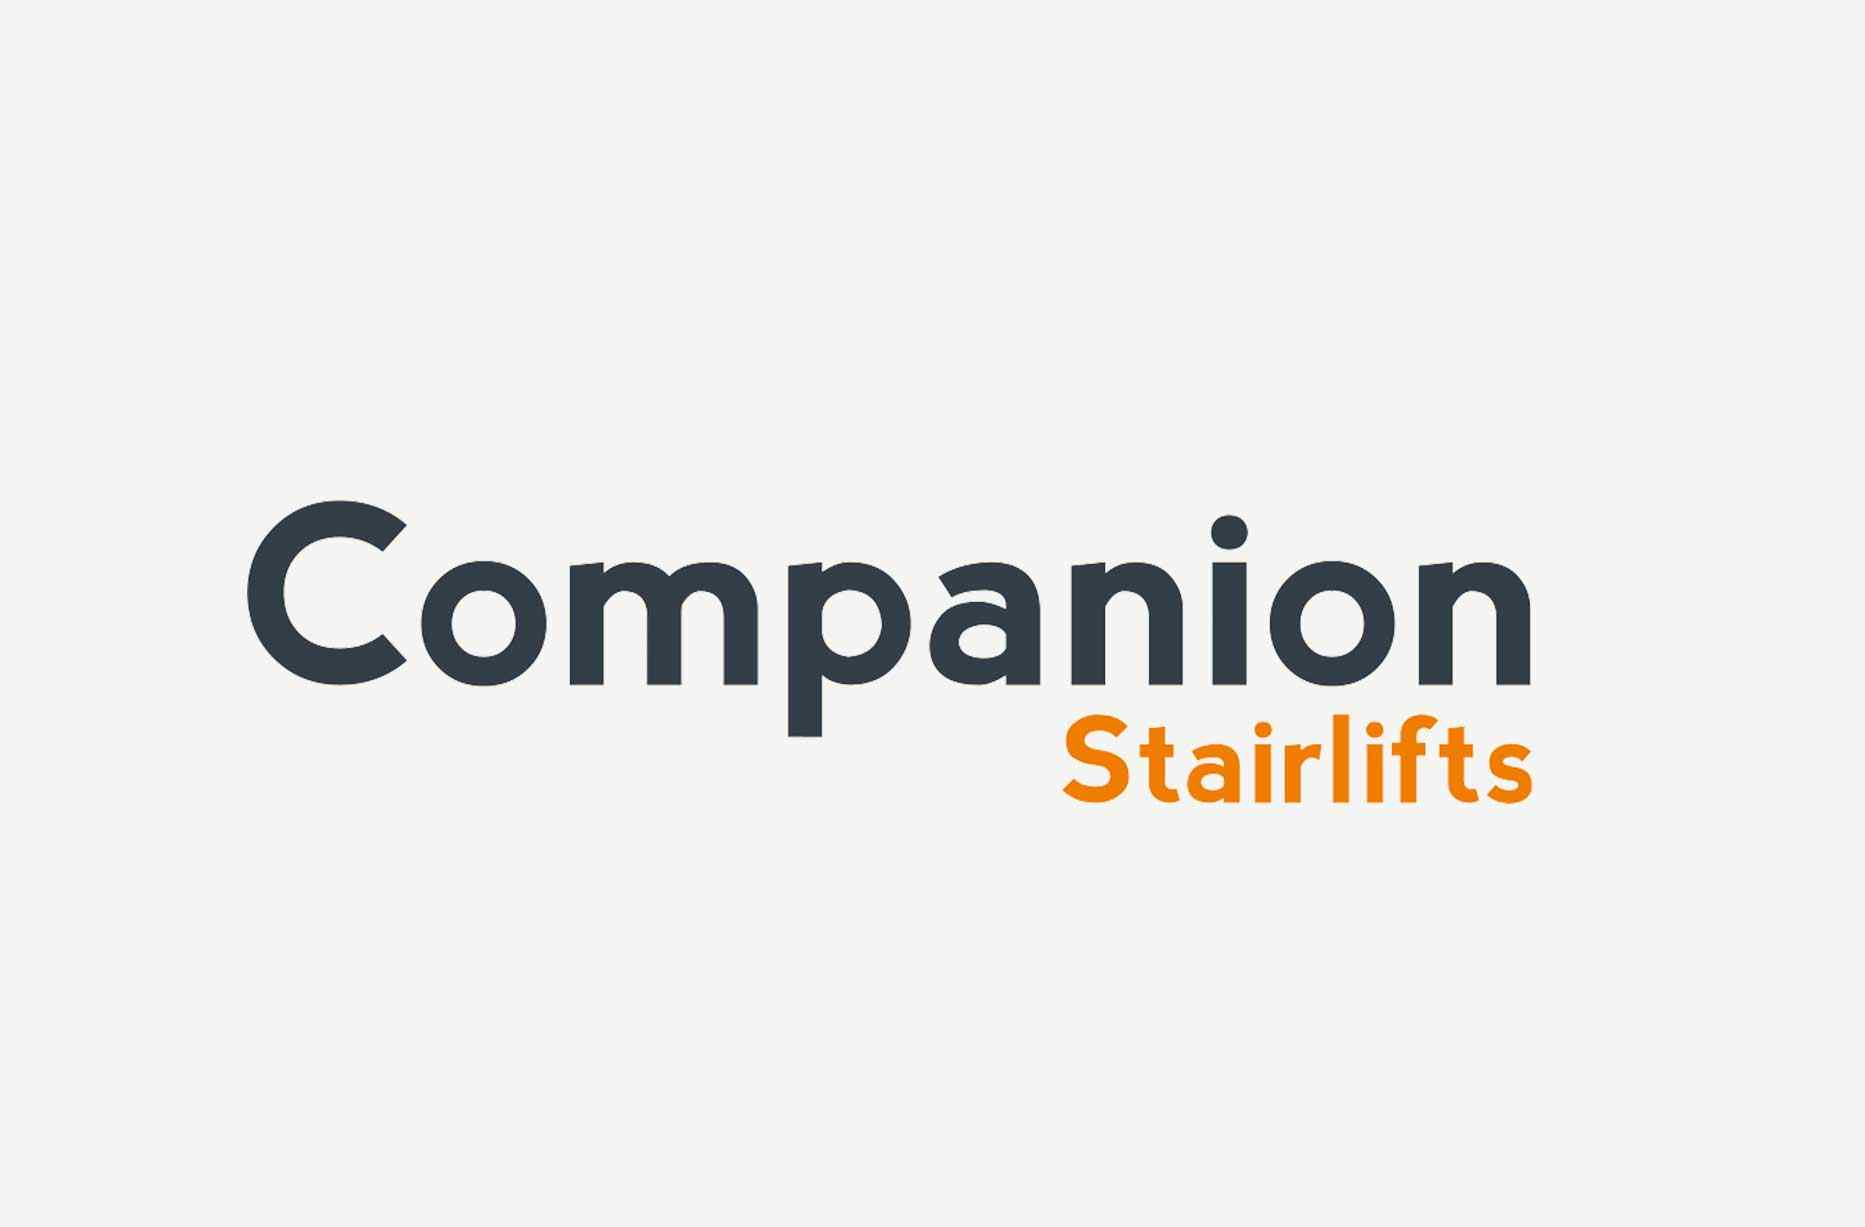 Companion Stairlifts Video